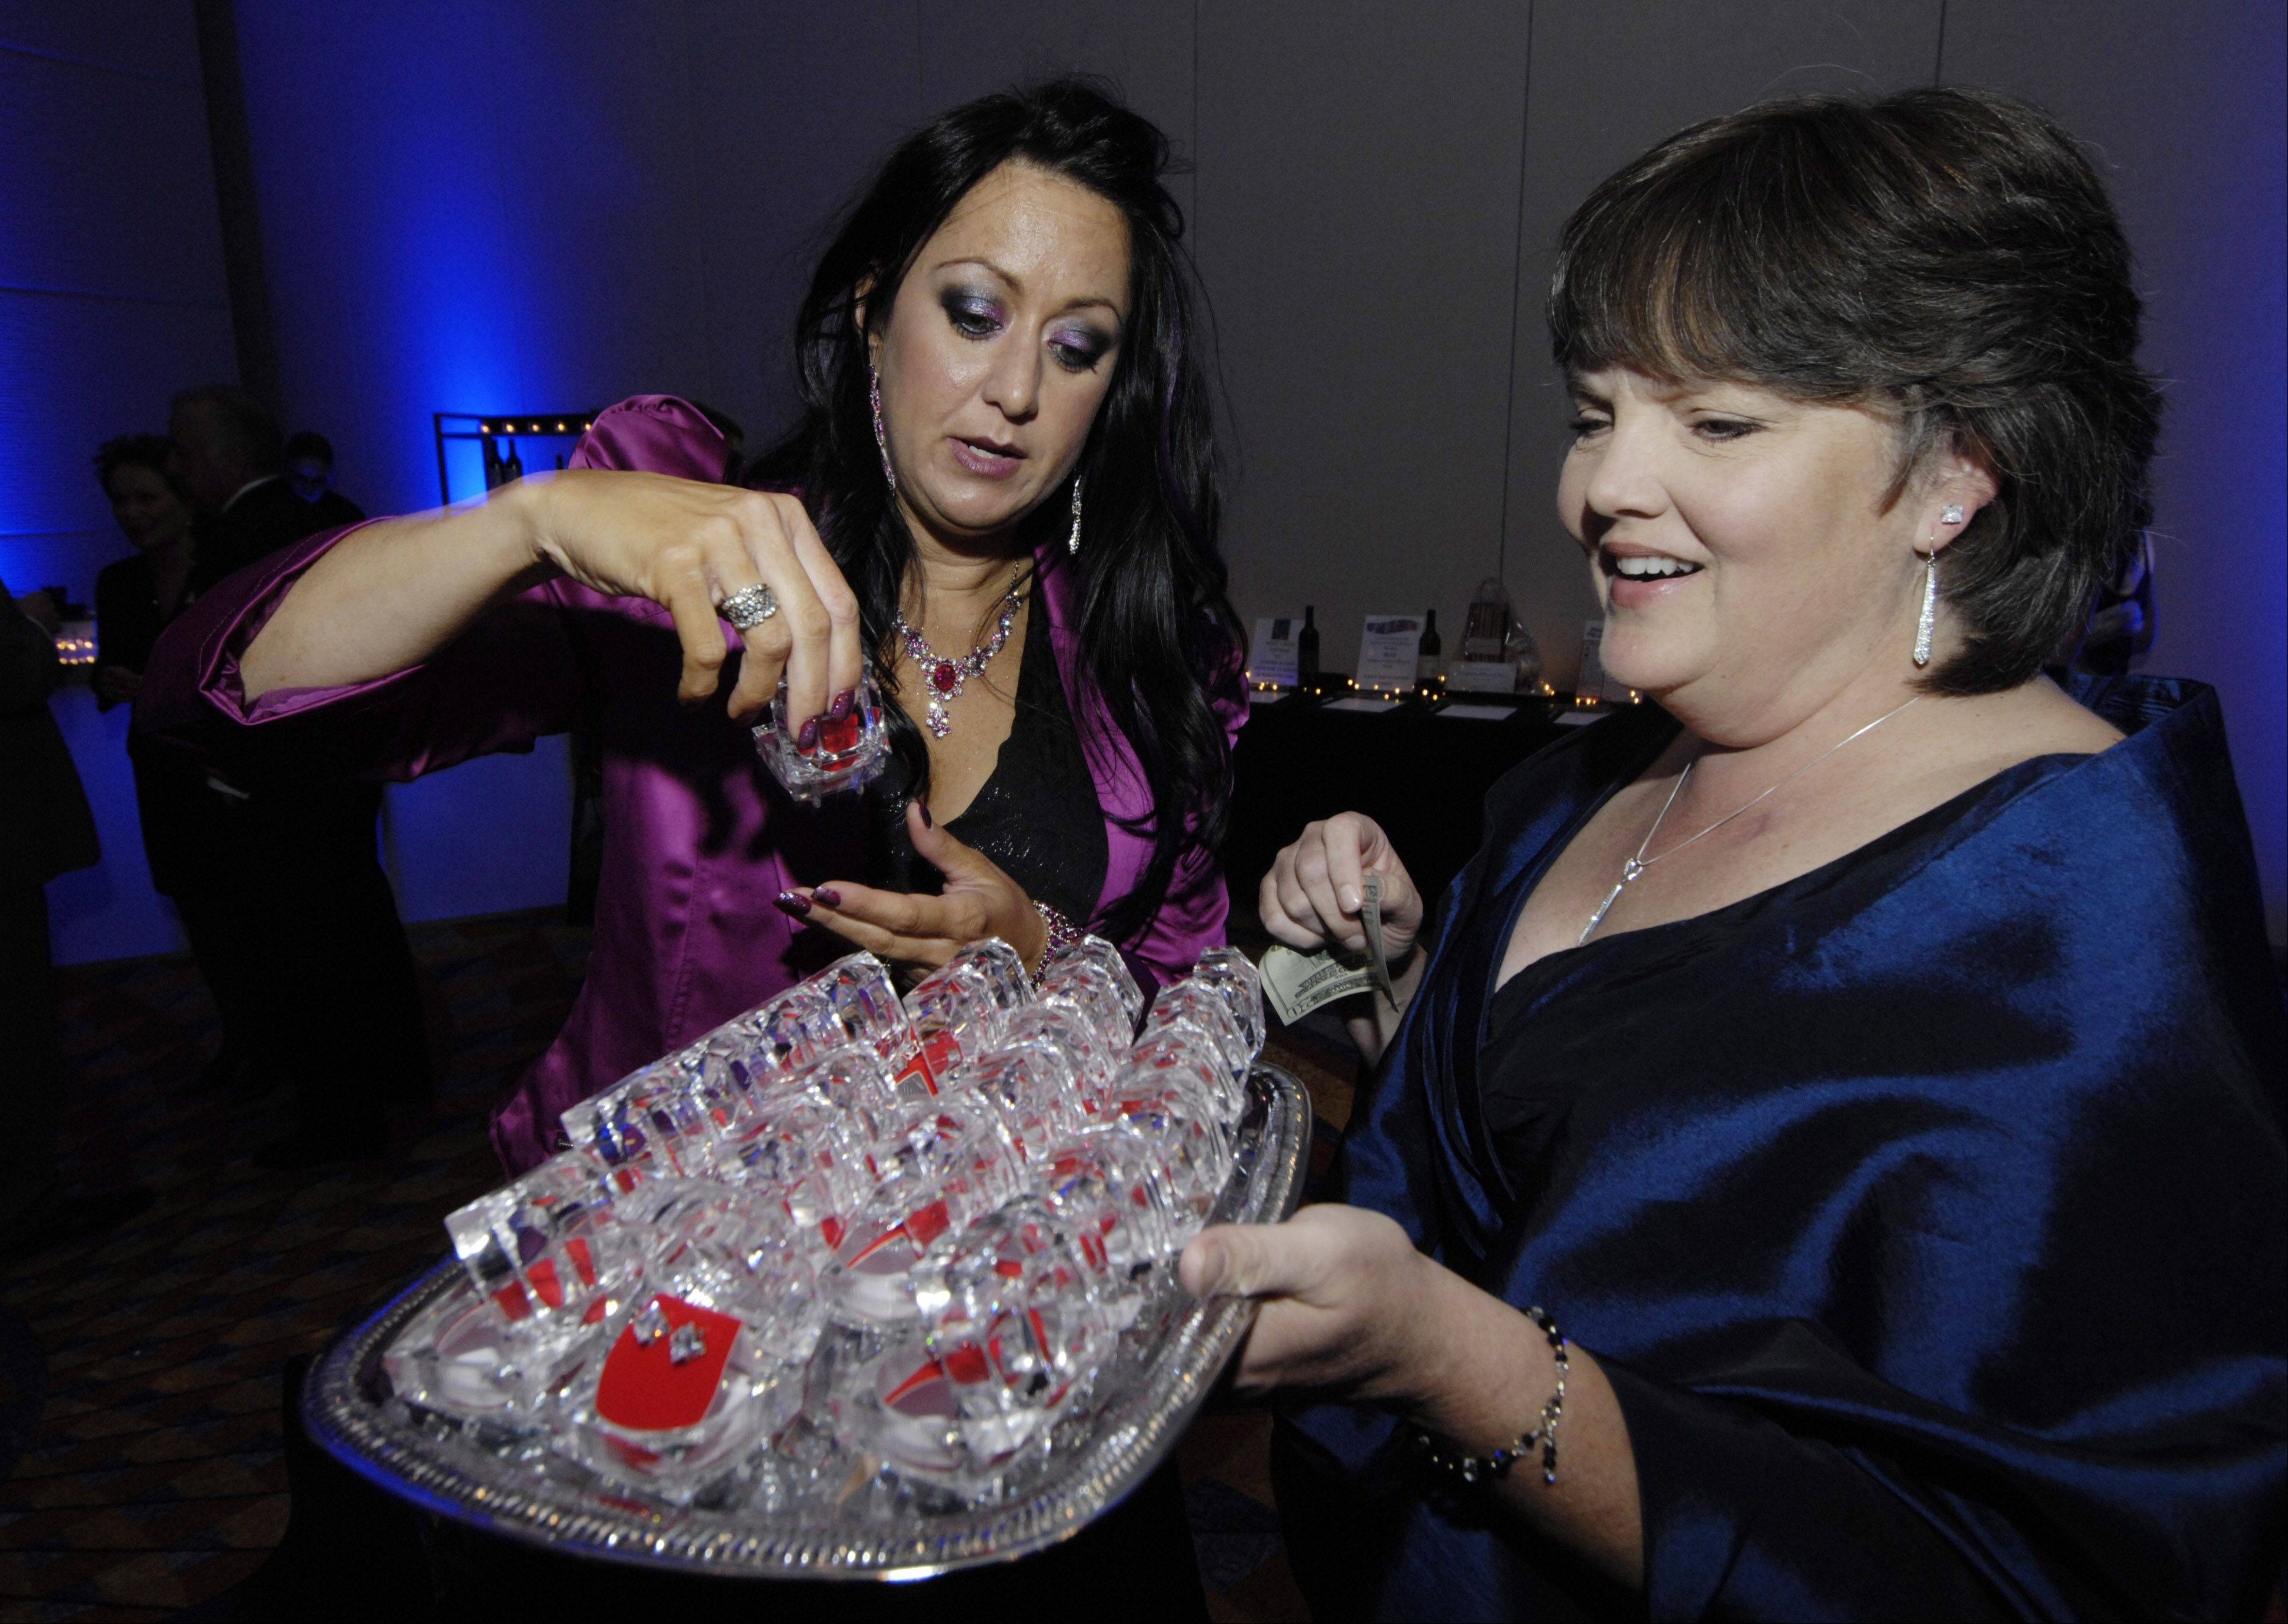 Kari-Ann Ryan of Schaumburg makes a selection for the diamond earring raffle with the assistance of volunteer Kathy Atwell of Schaumburg during the Schaumburg Business Association gala and awards Saturday at the Renaissance Convention Center Hotel.